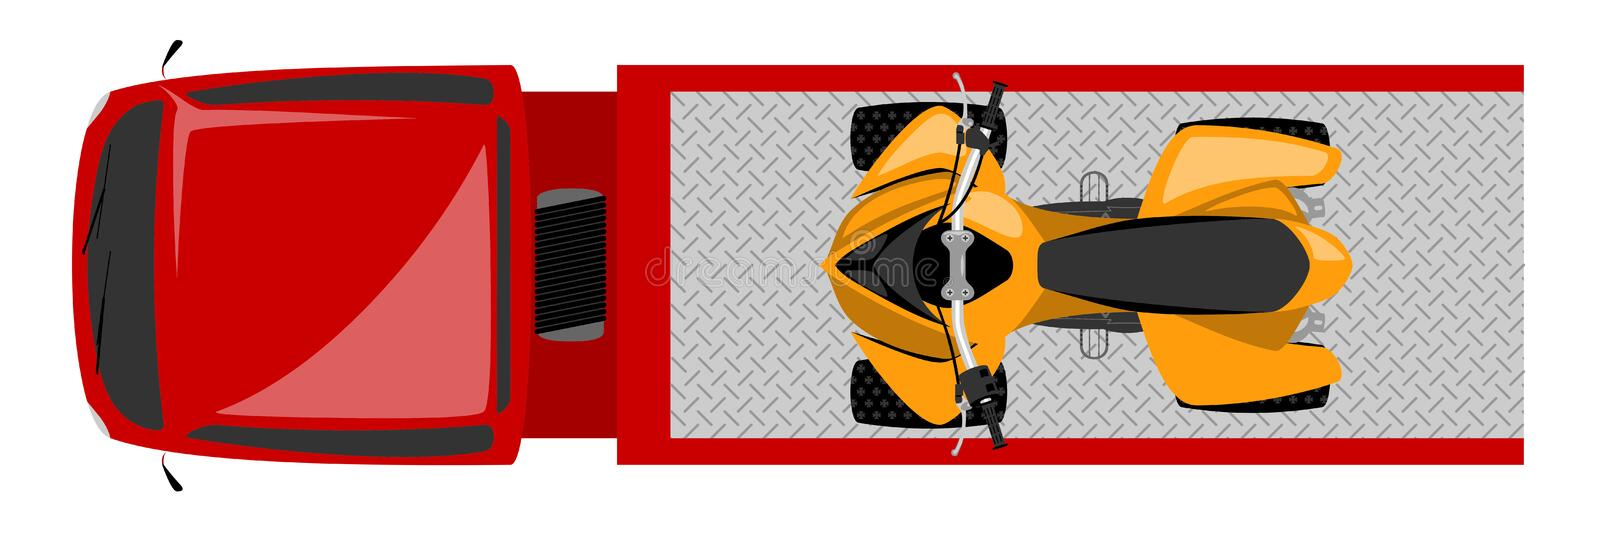 Top view of tow truck with quad bike color illustration royalty free illustration